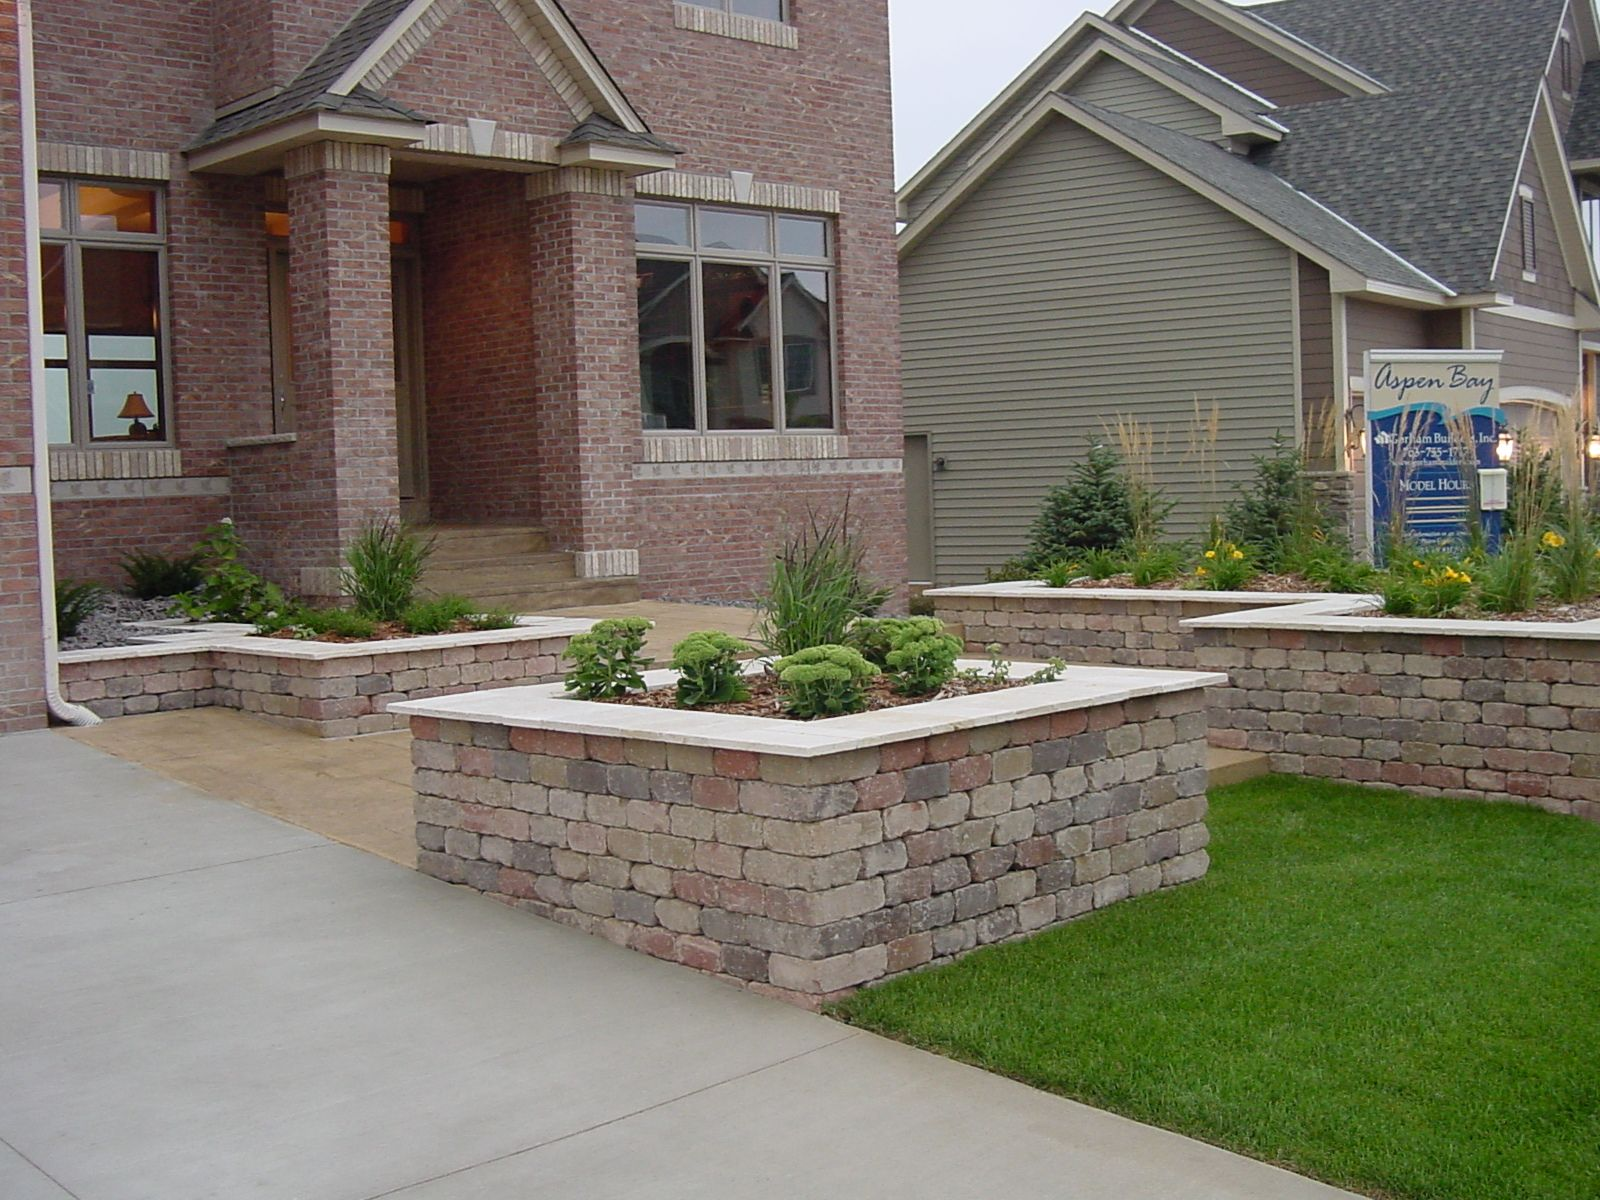 Landscape ideas for sloped areas in shade - Hardscape Ideas For Slopes